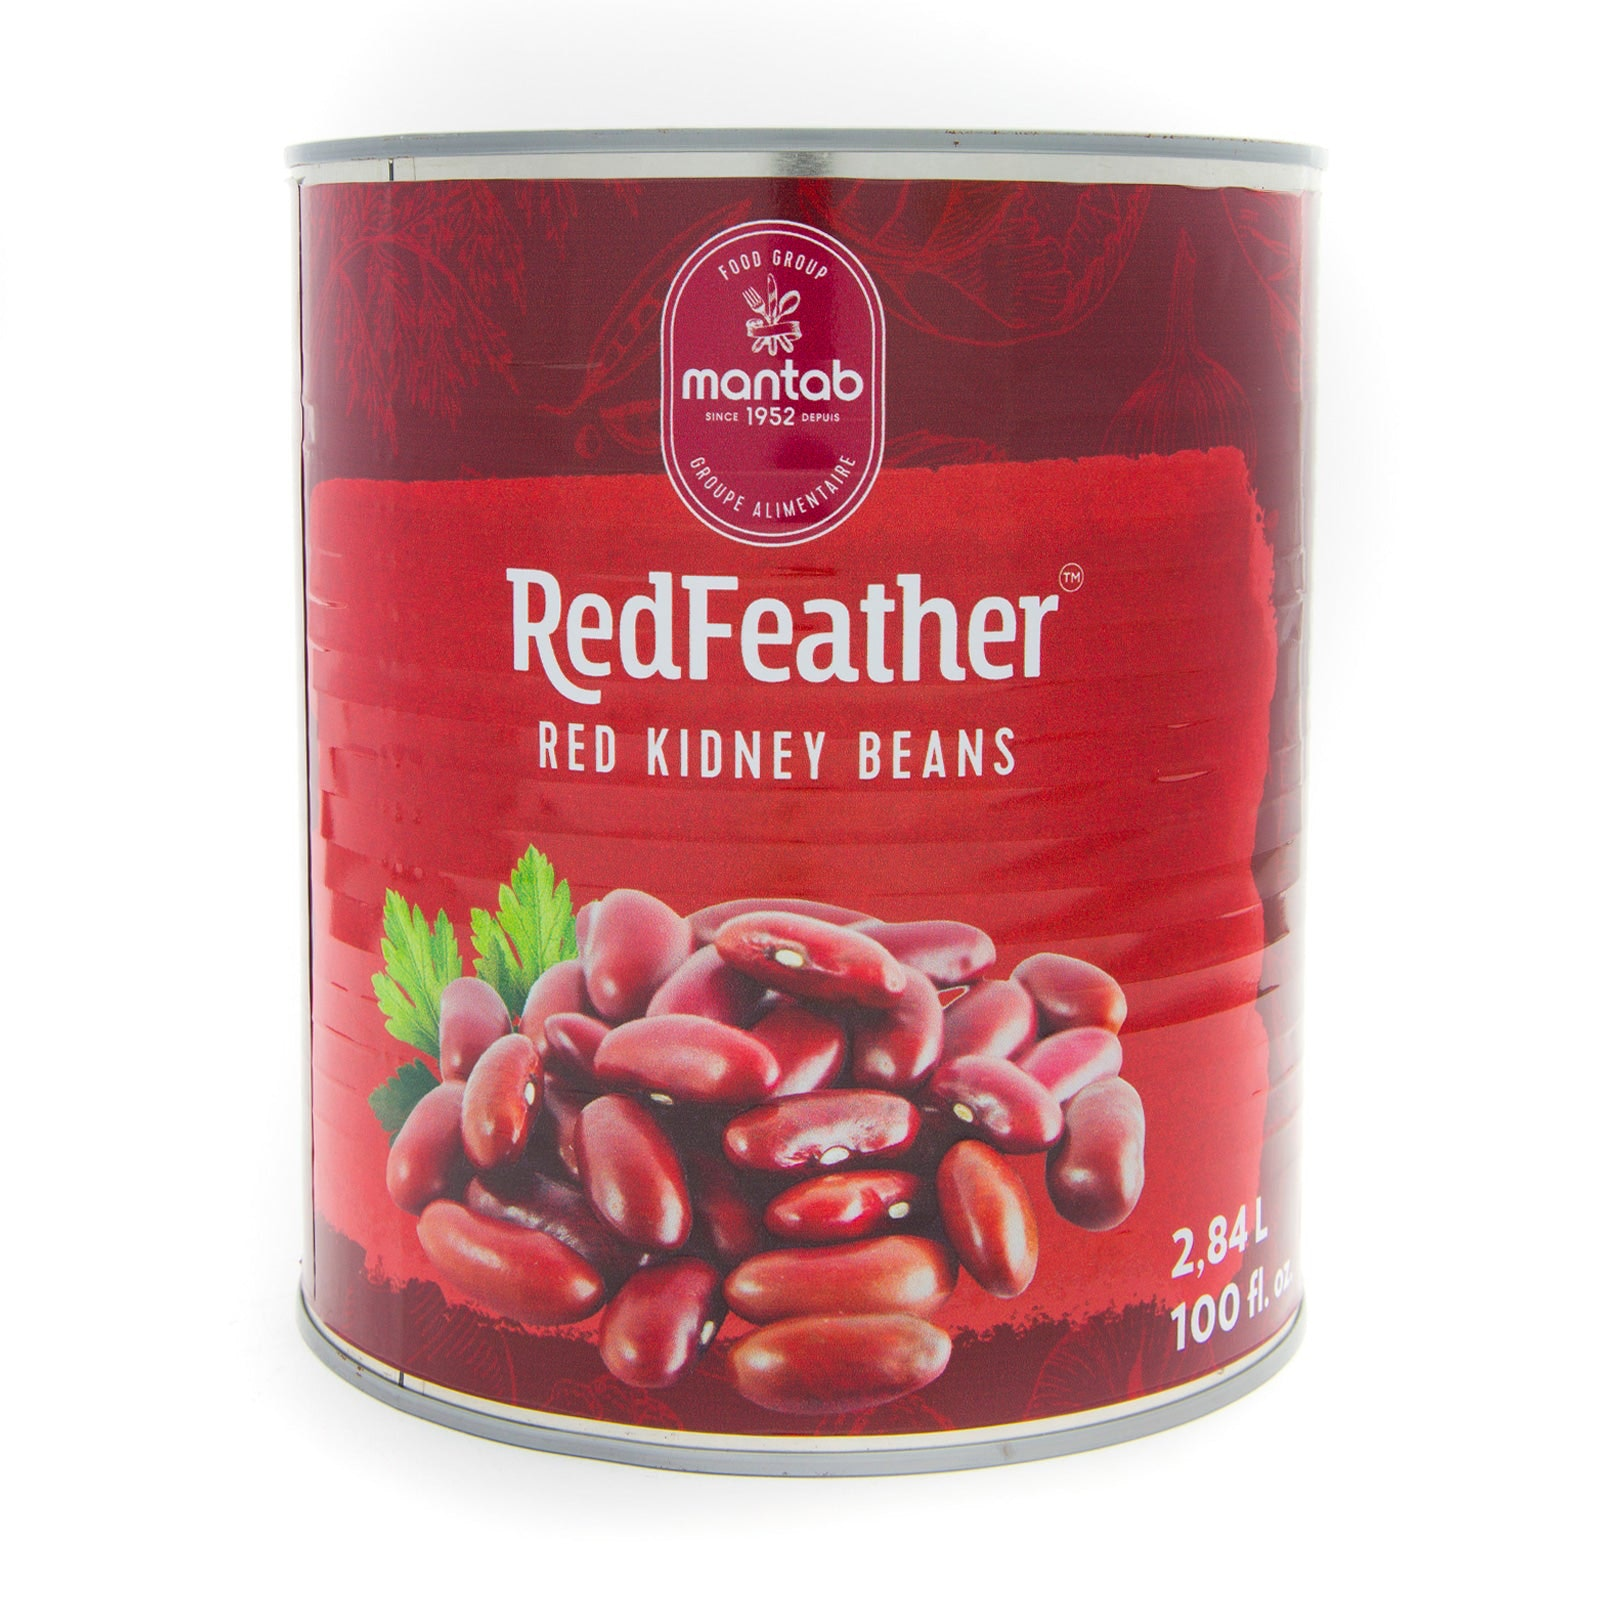 RED FEATHER Red kidney beans